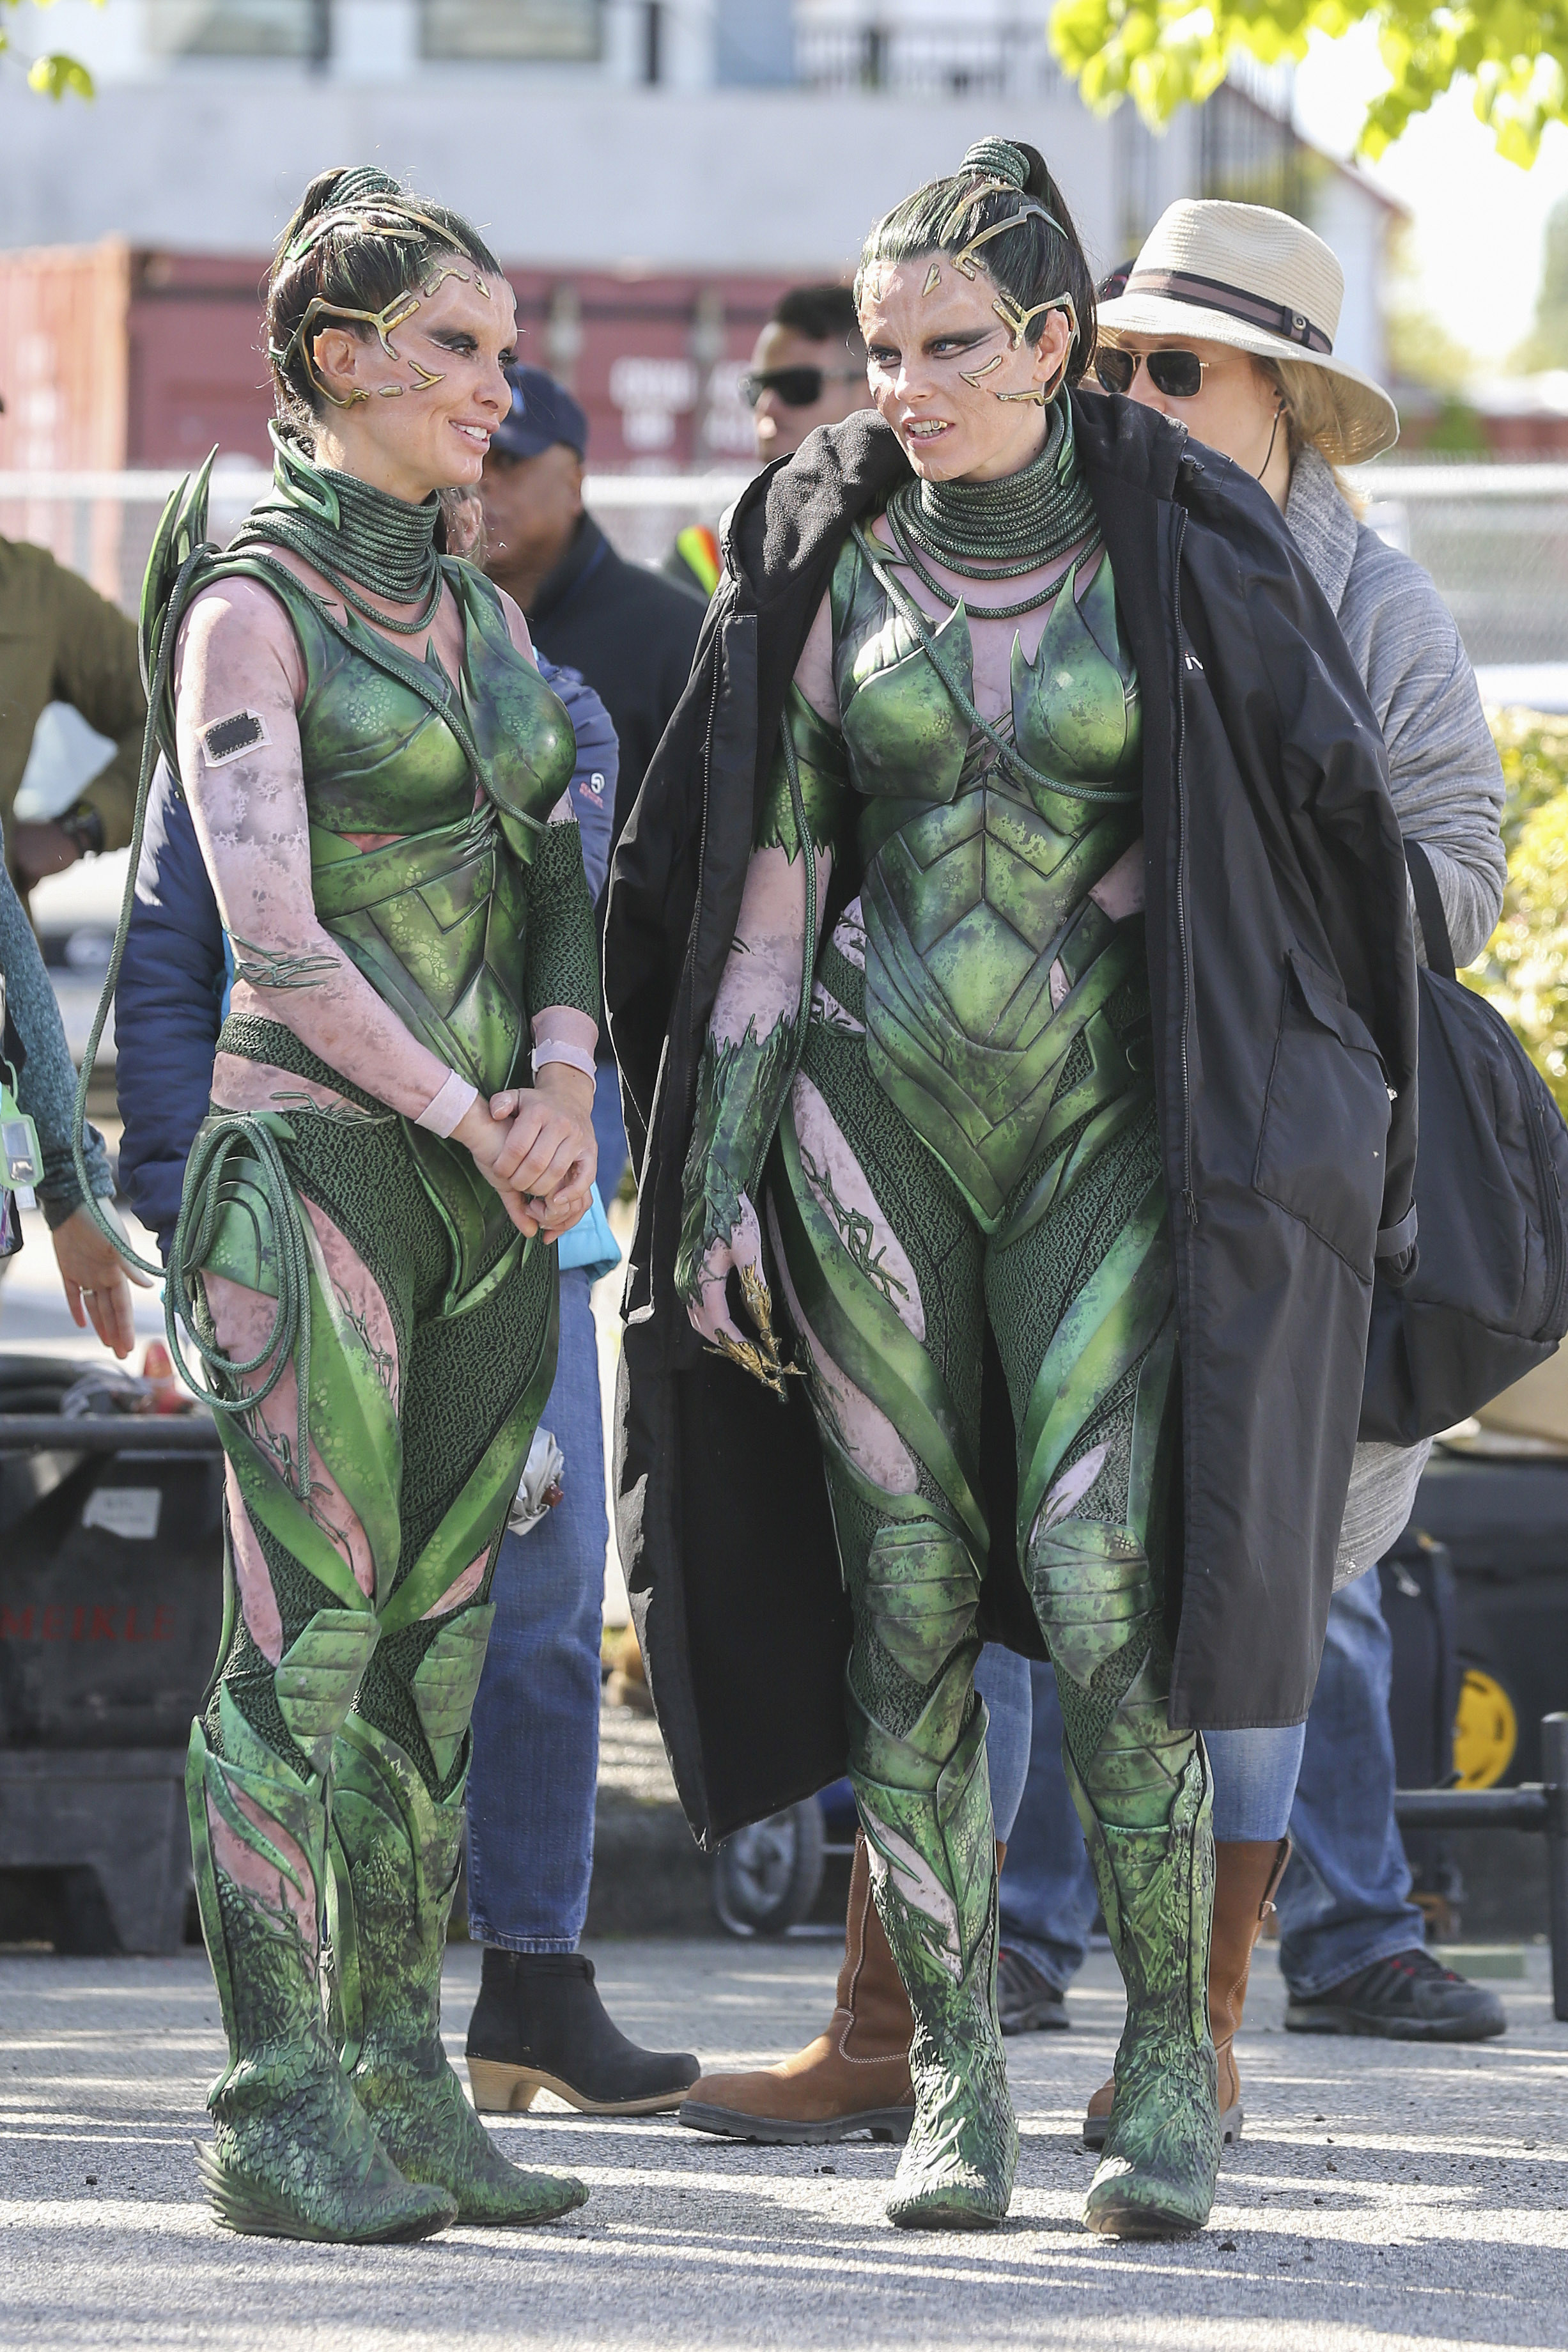 Elizabeth Banks and her stunt double wearing green costumes while filming